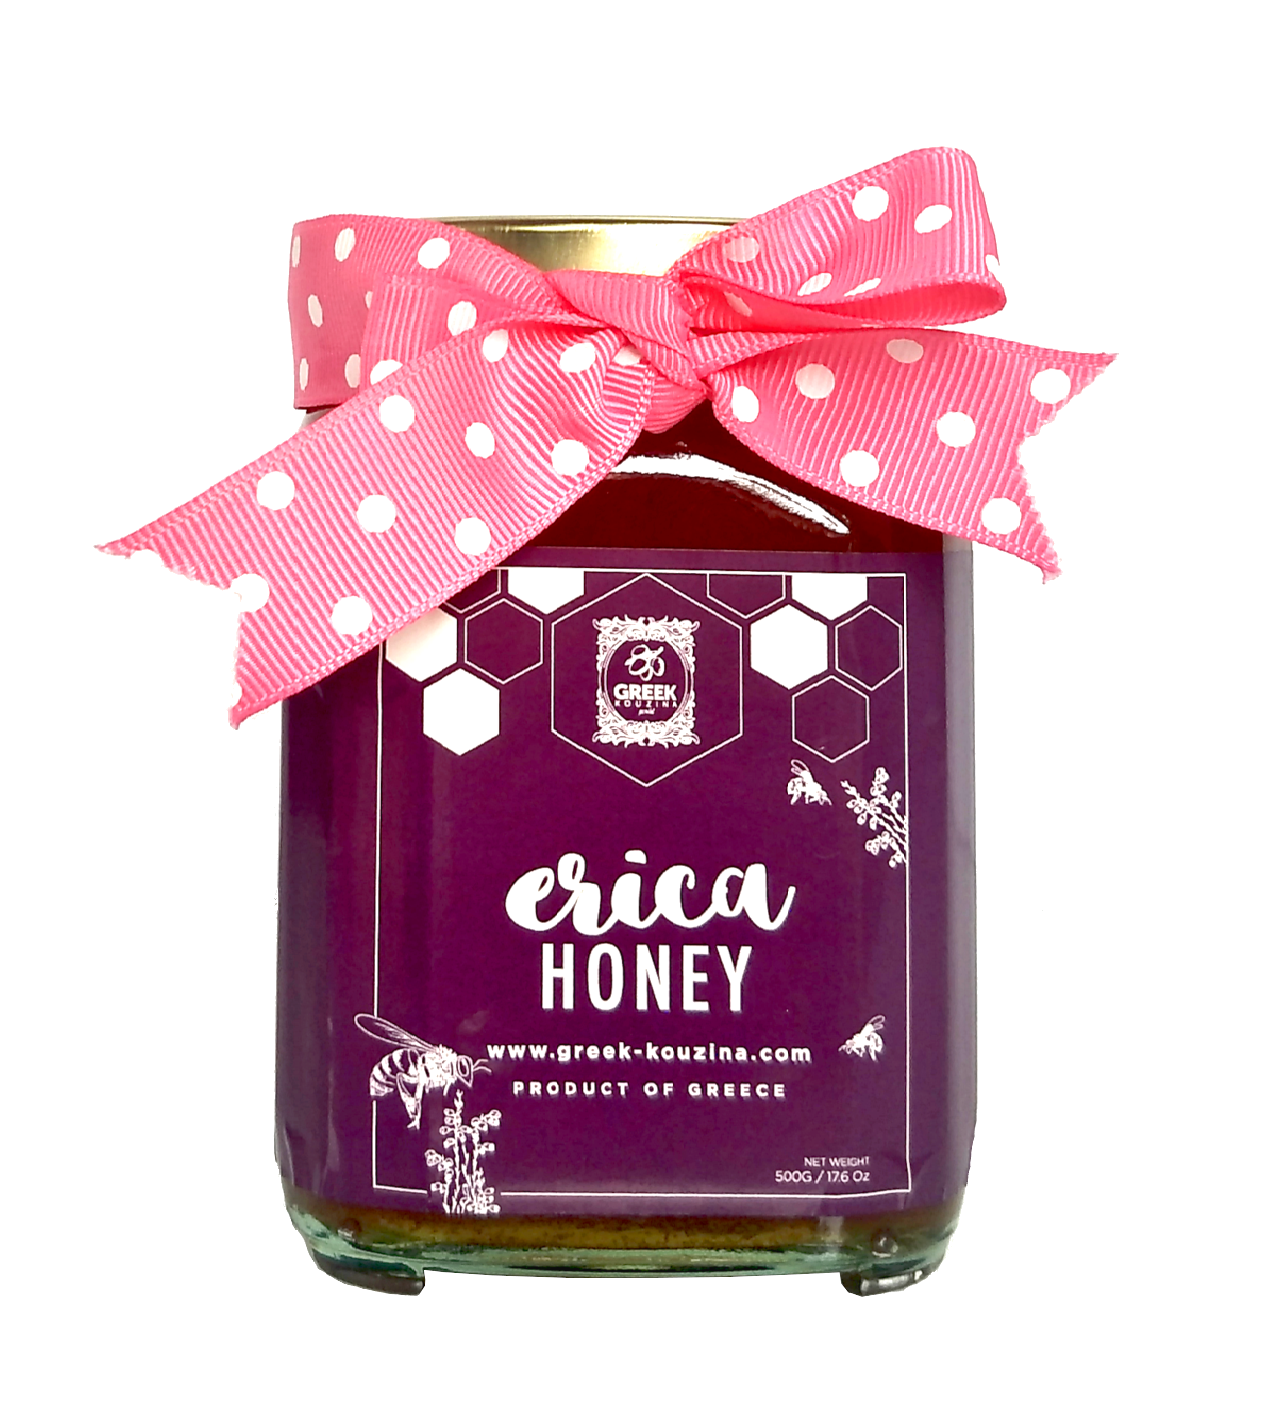 Top Selling Erica Honey 0.5 KG Jar With Grade AAA Made Of 100% Raw Erica Honey At Good Bulk Price